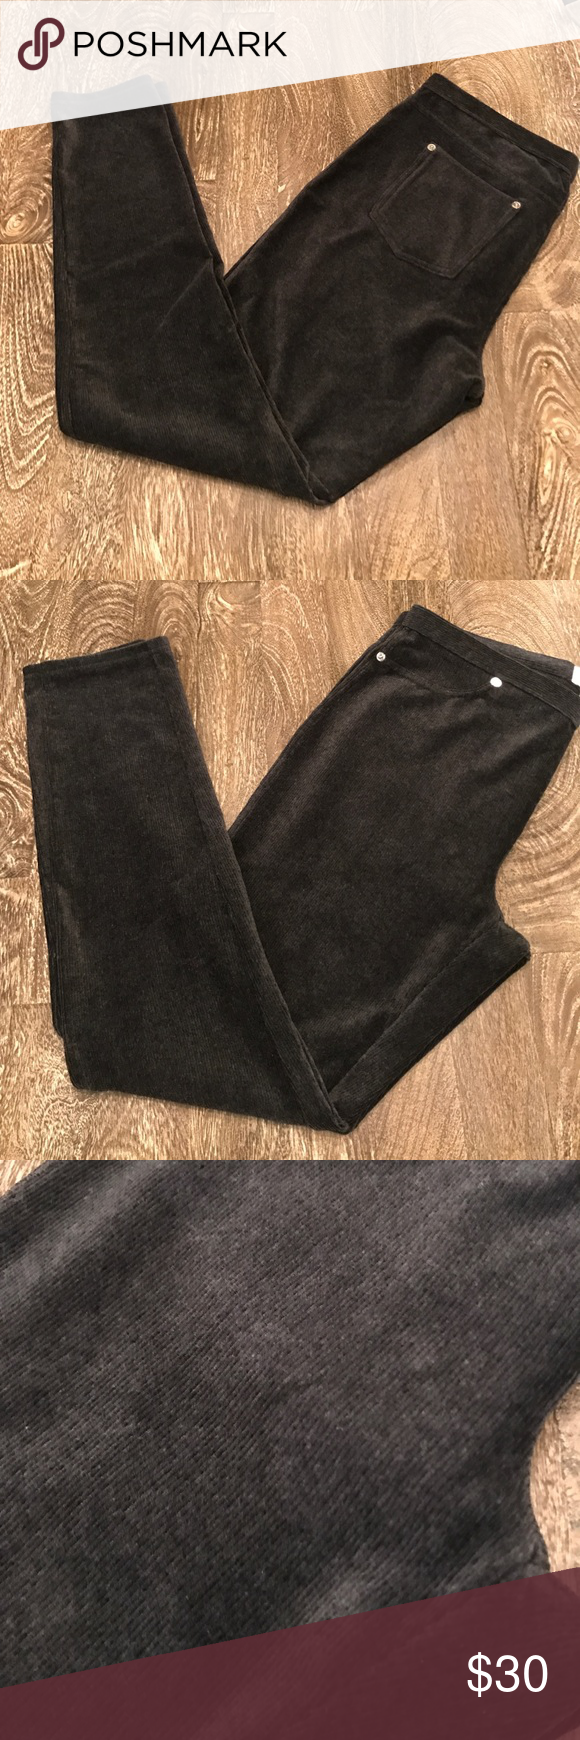 Michael Kors Velvet Leggings These Michael Kors leggings are stylish while still being comfortable!  Details: Gray Velvet Silver Hardware  Excellent Condition. NWT. Smoke Free Environment.  Reasonable offers will be considered.   No trades. MICHAEL Michael Kors Pants Leggings